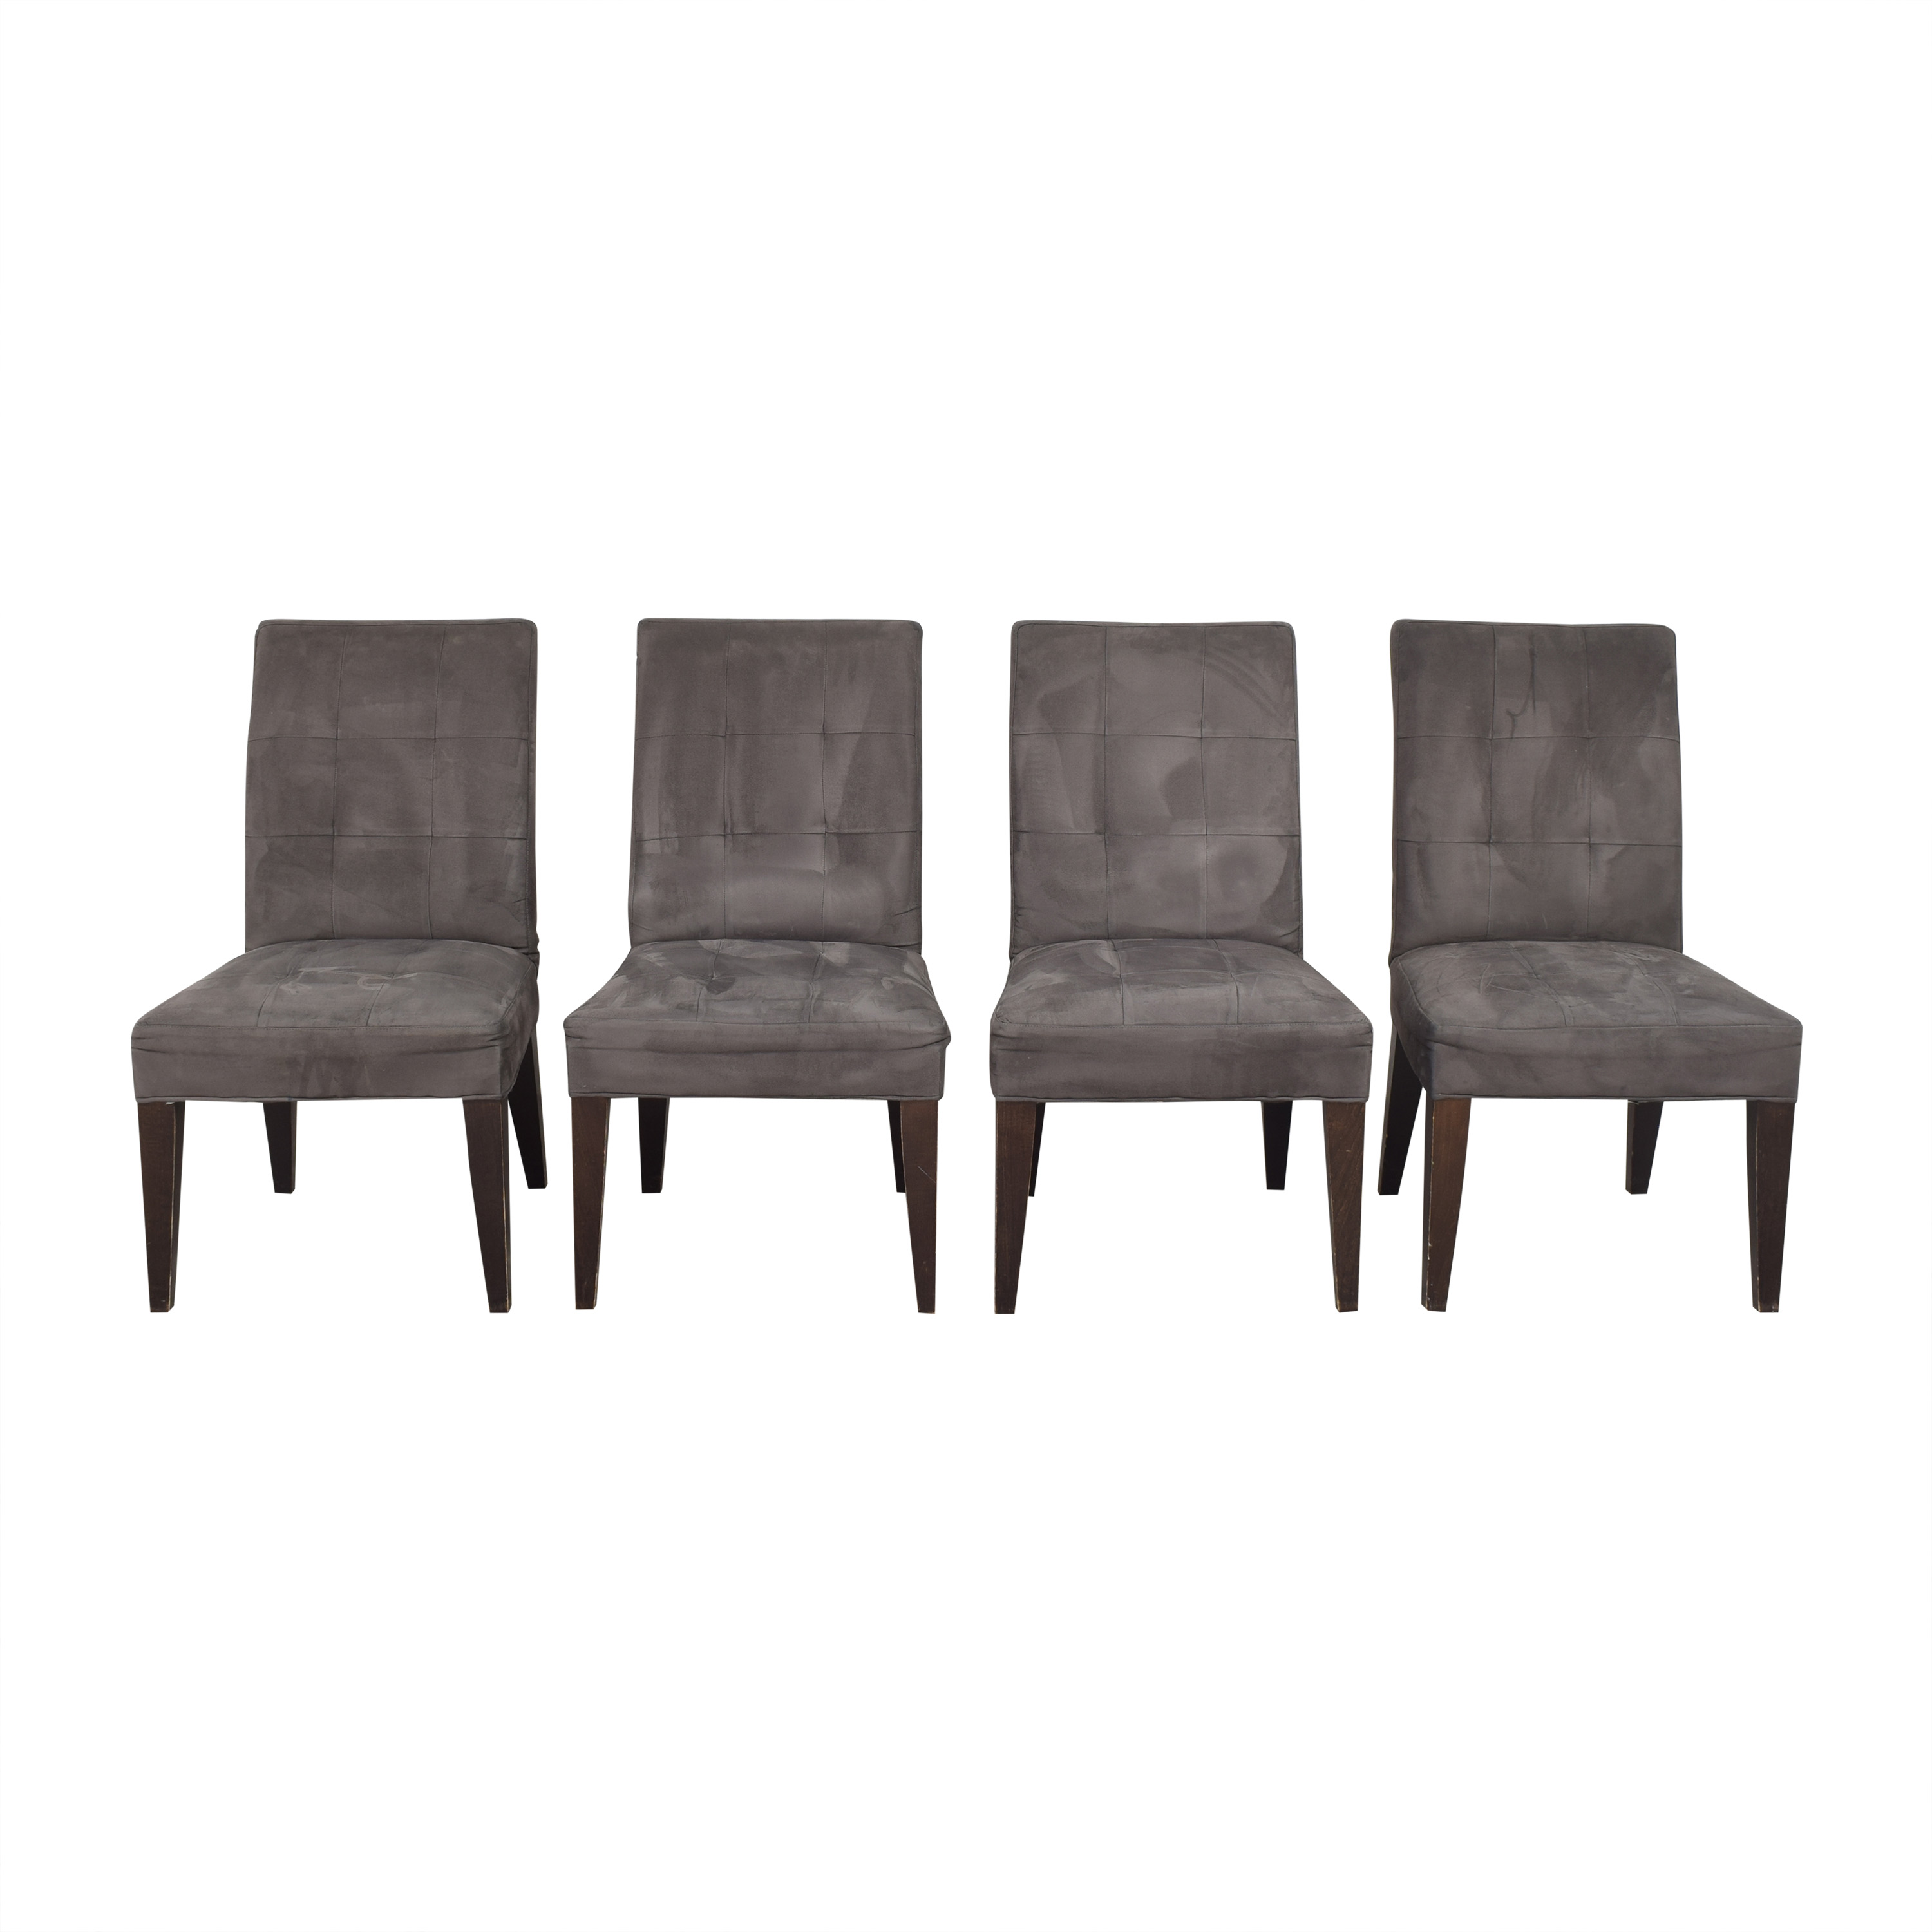 shop Lee Industries Lee Industries Upholstered Dining Side Chairs online